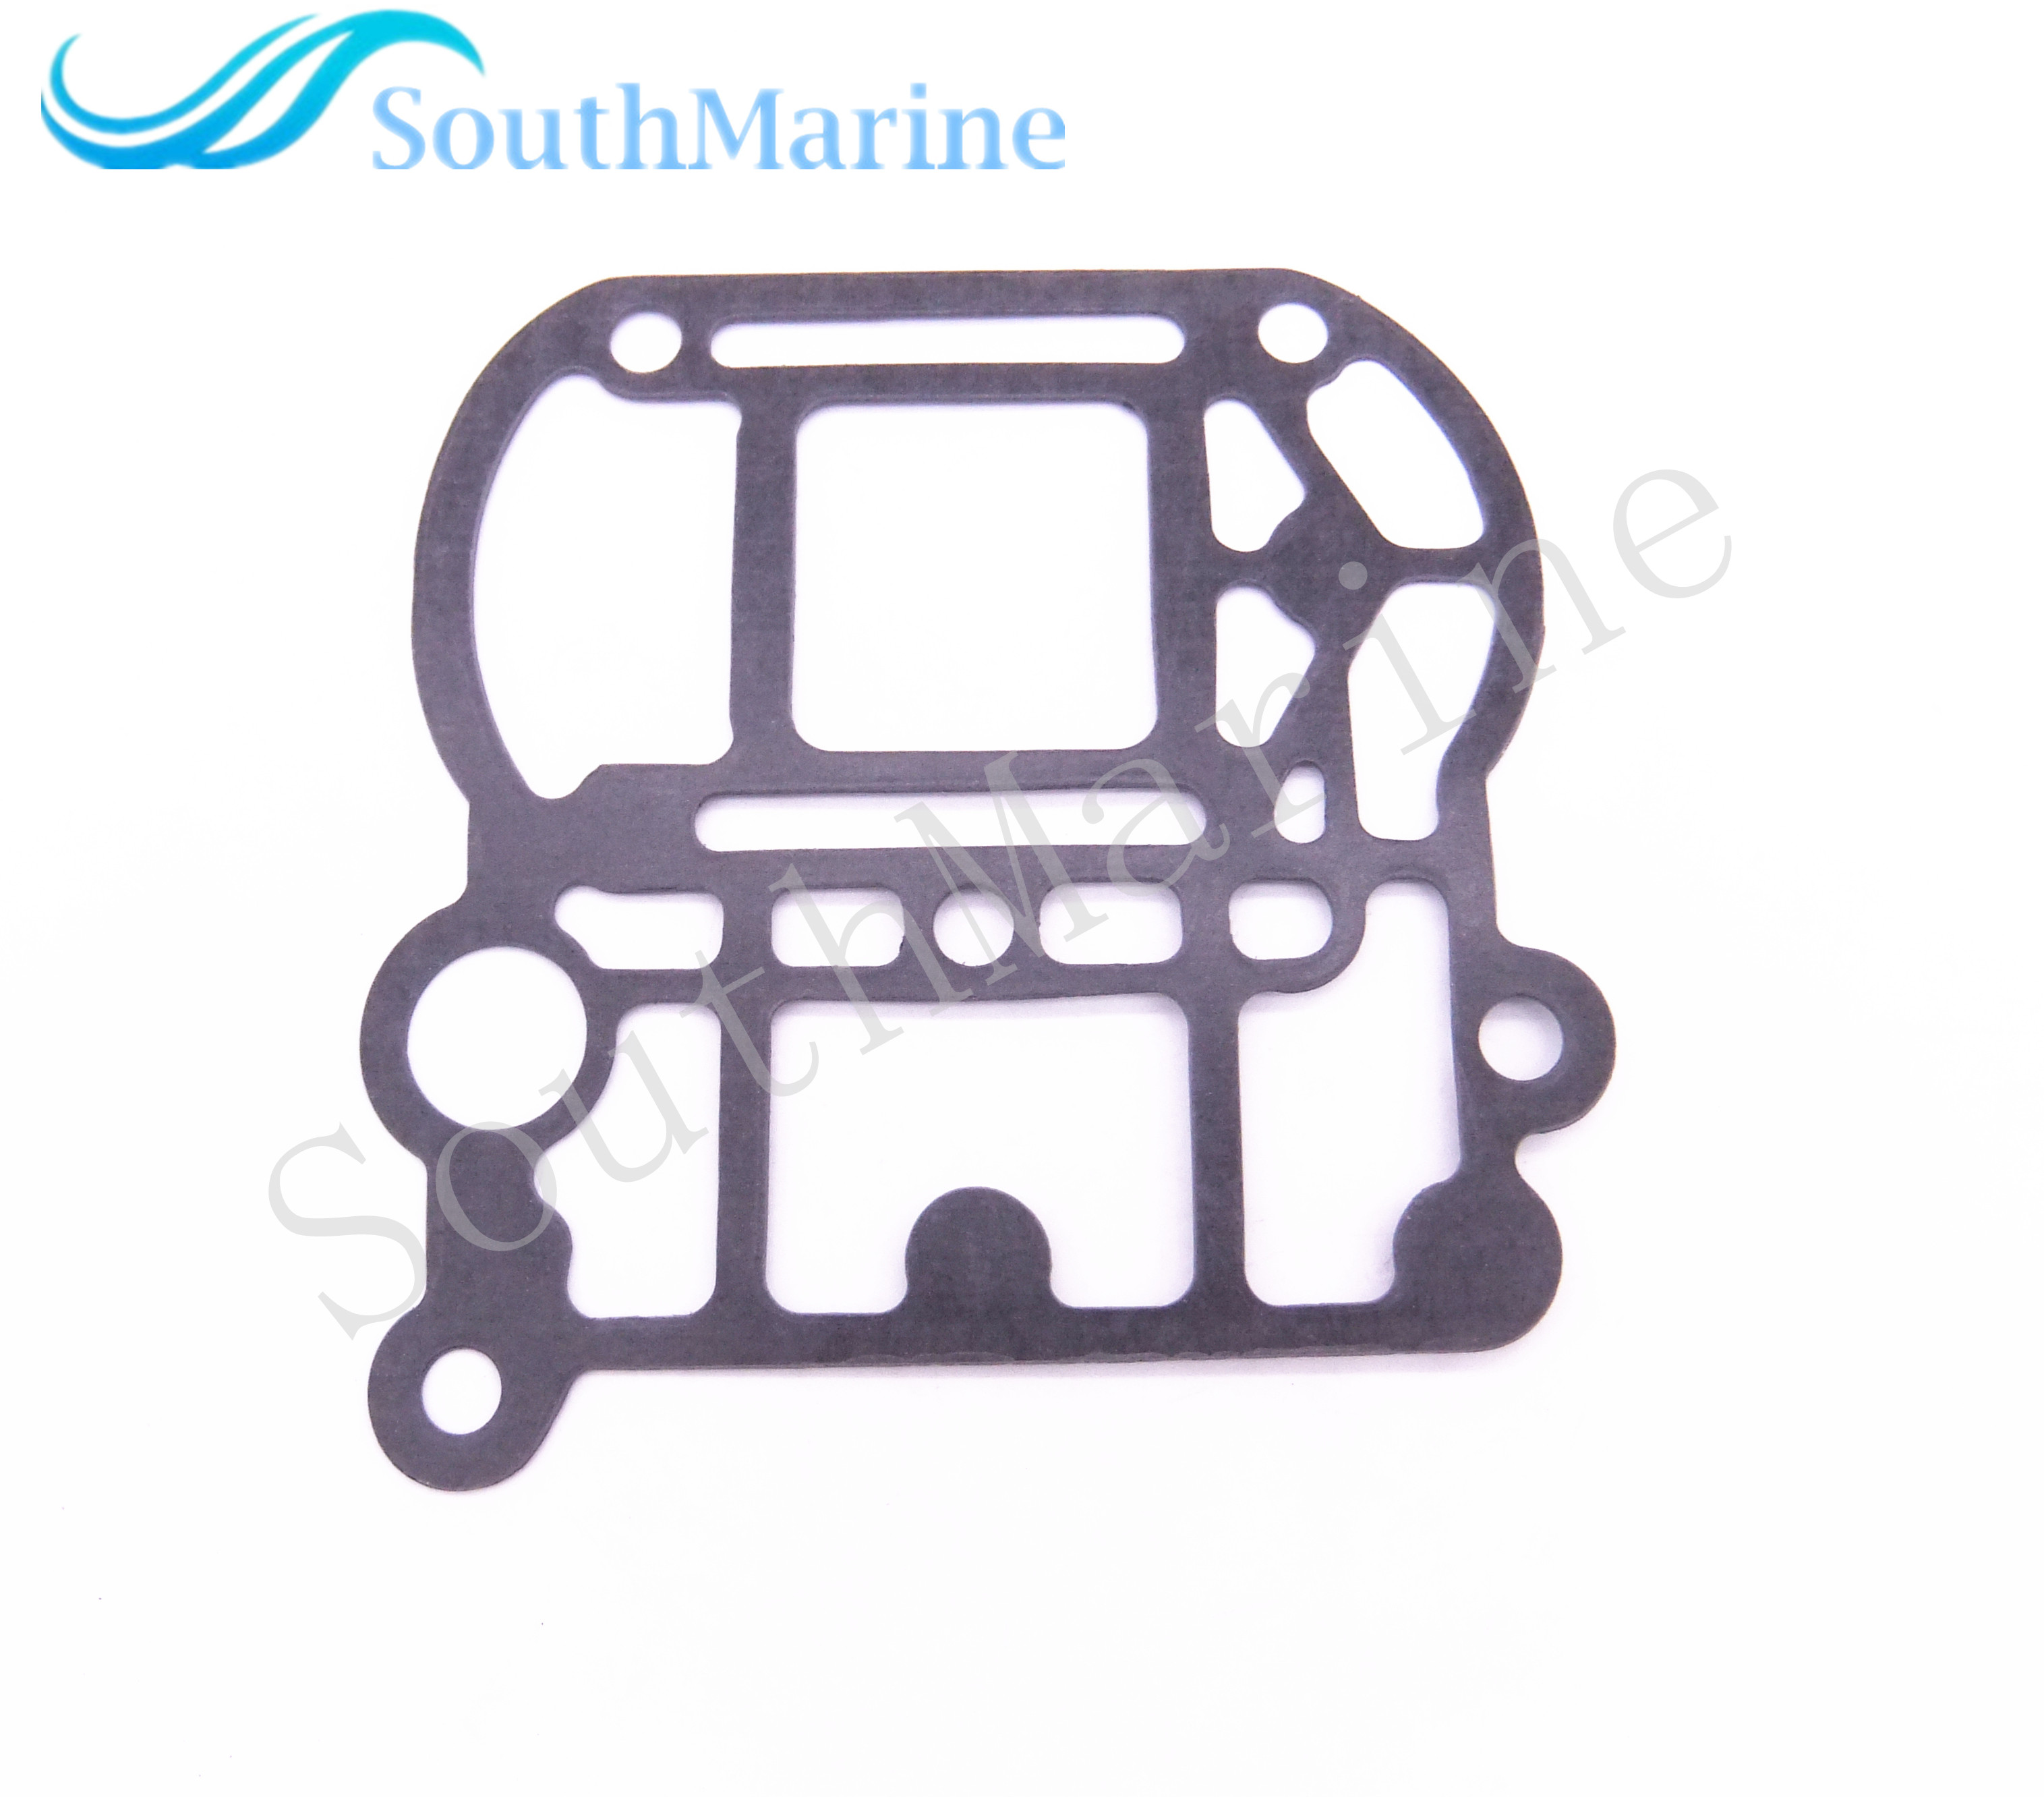 Boat Motor 40F-05.00.00.12 Exhaust Mainfold Gasket for Hidea 2-Stroke 40F Outboard Engine